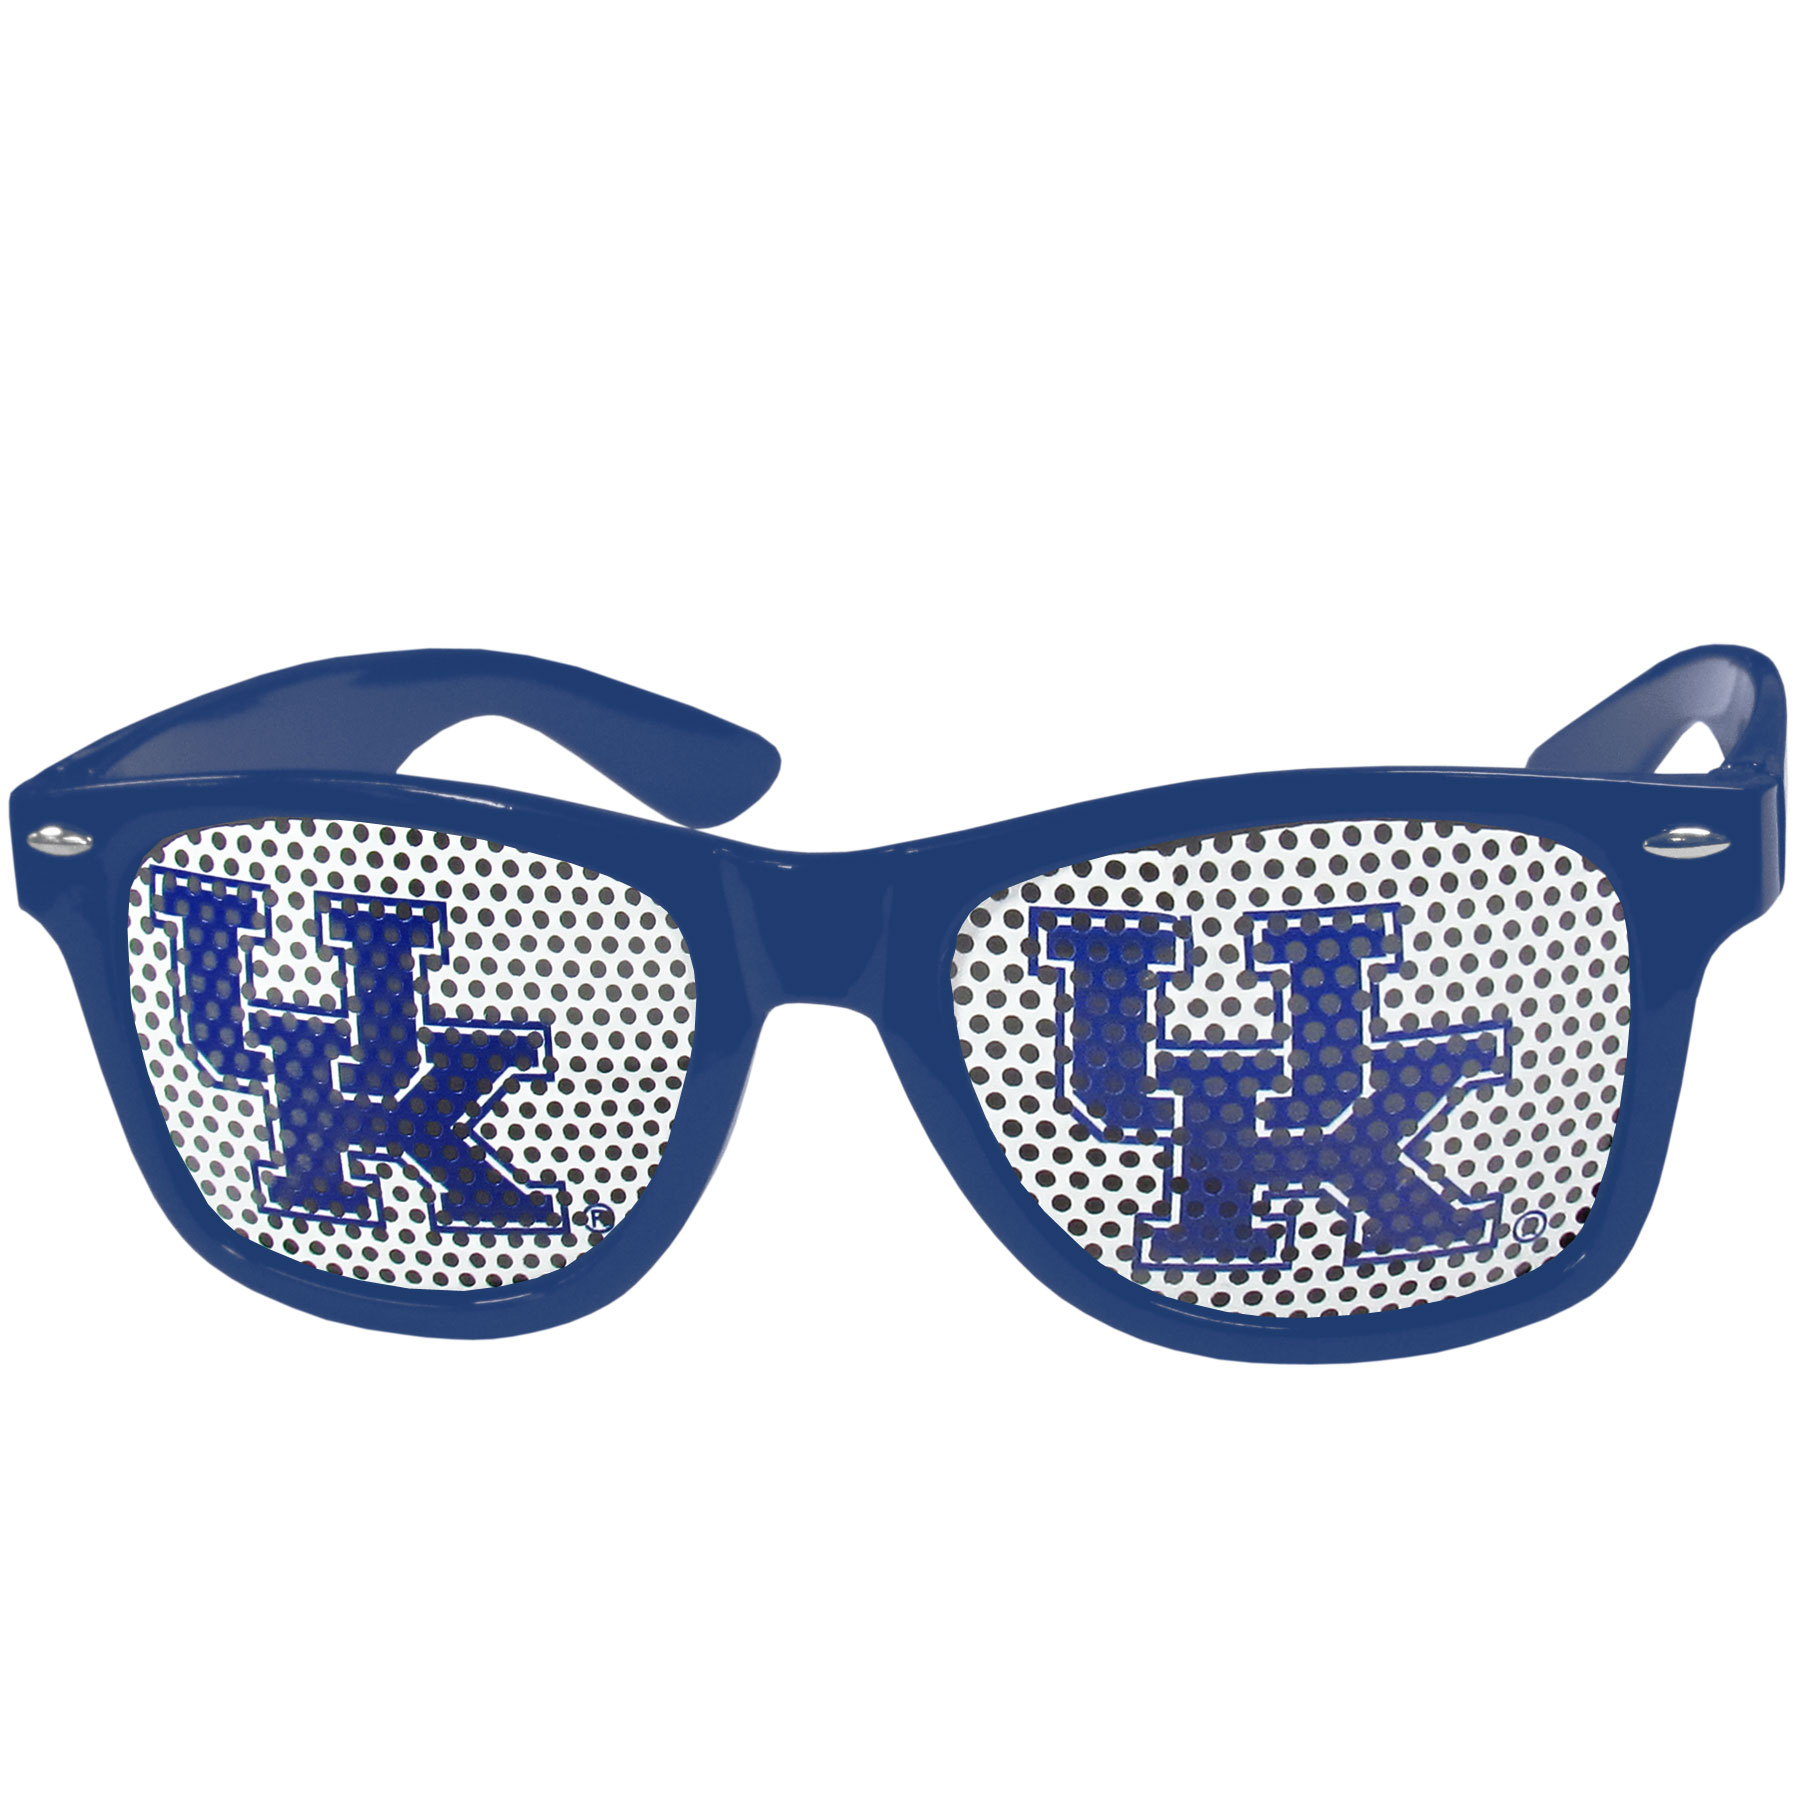 Kentucky Wildcats Game Day Shades - Our officially licensed game day shades are the perfect accessory for the devoted Kentucky Wildcats fan! The sunglasses have durable polycarbonate frames with flex hinges for comfort and damage resistance. The lenses feature brightly colored team clings that are perforated for visibility.